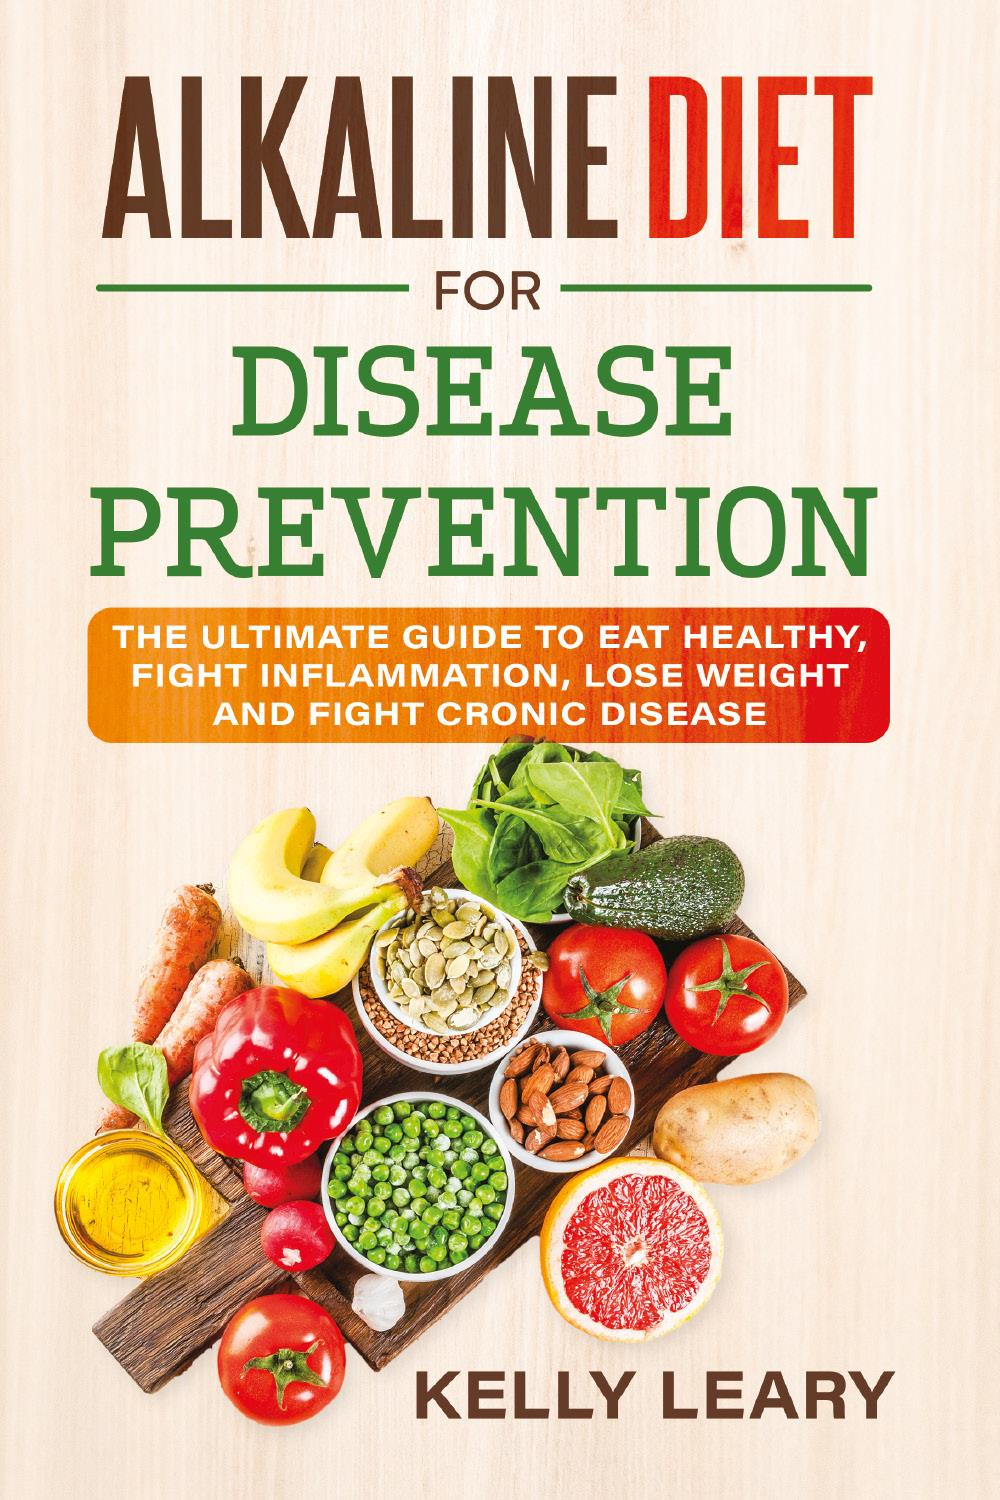 ALKALINE DIET FOR DISEASE PREVENTION. The Ultimate Guide to Eat Healthy, Fight Inflammation, Lose Weight and Fight Cronic Disease